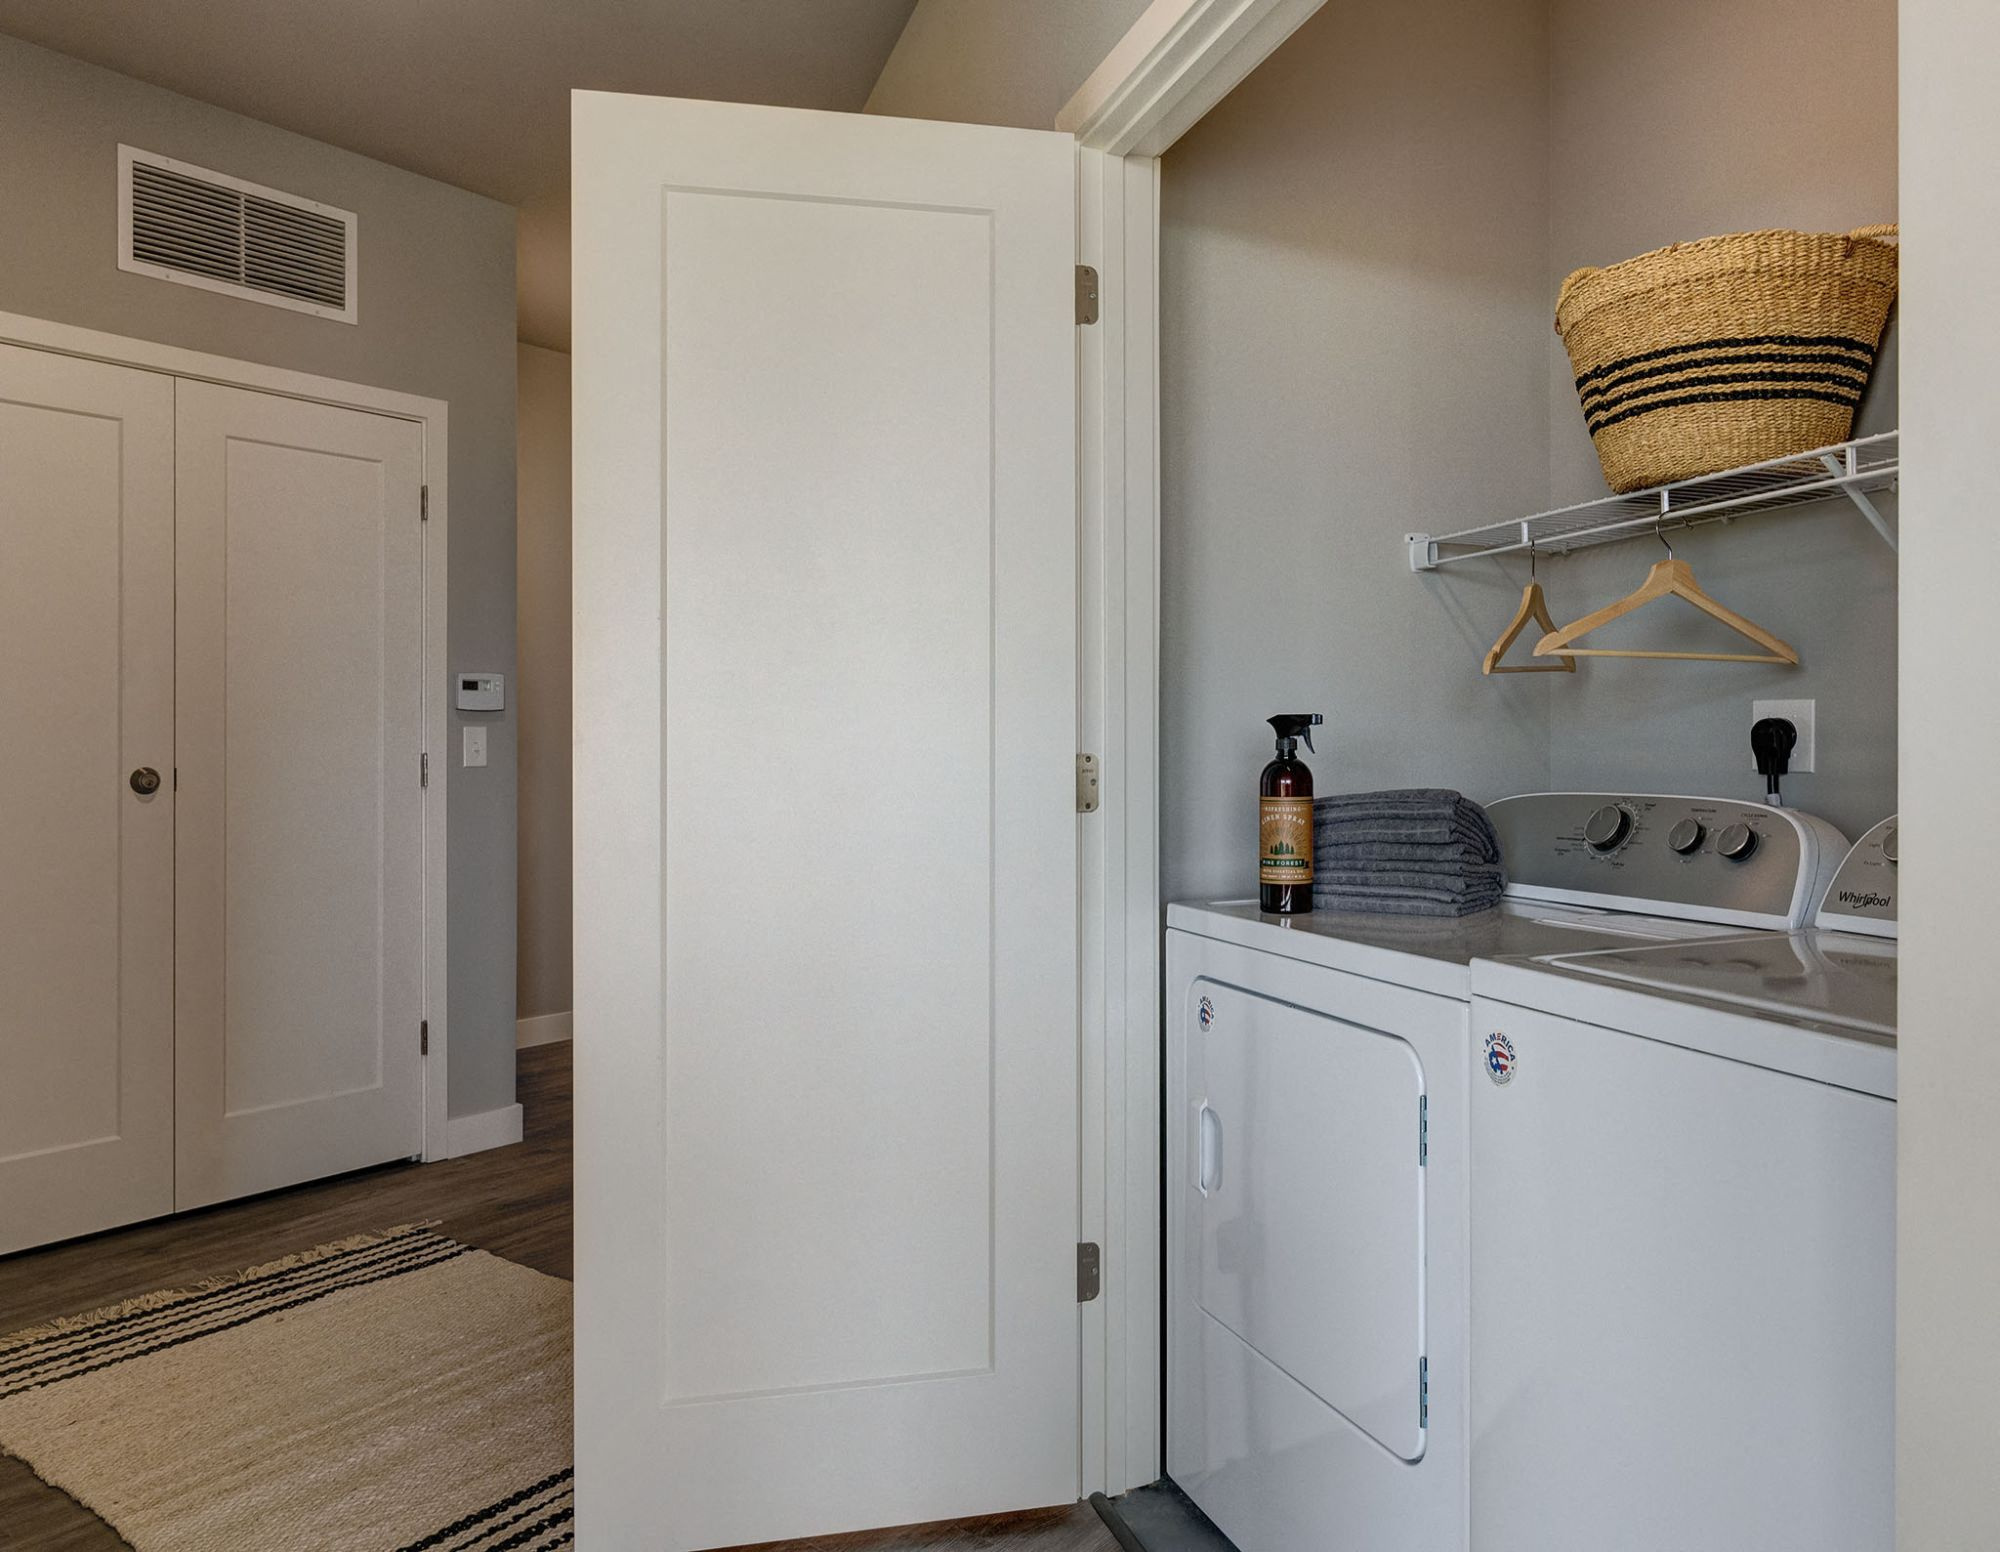 Washer and Dryer room in the model apartment